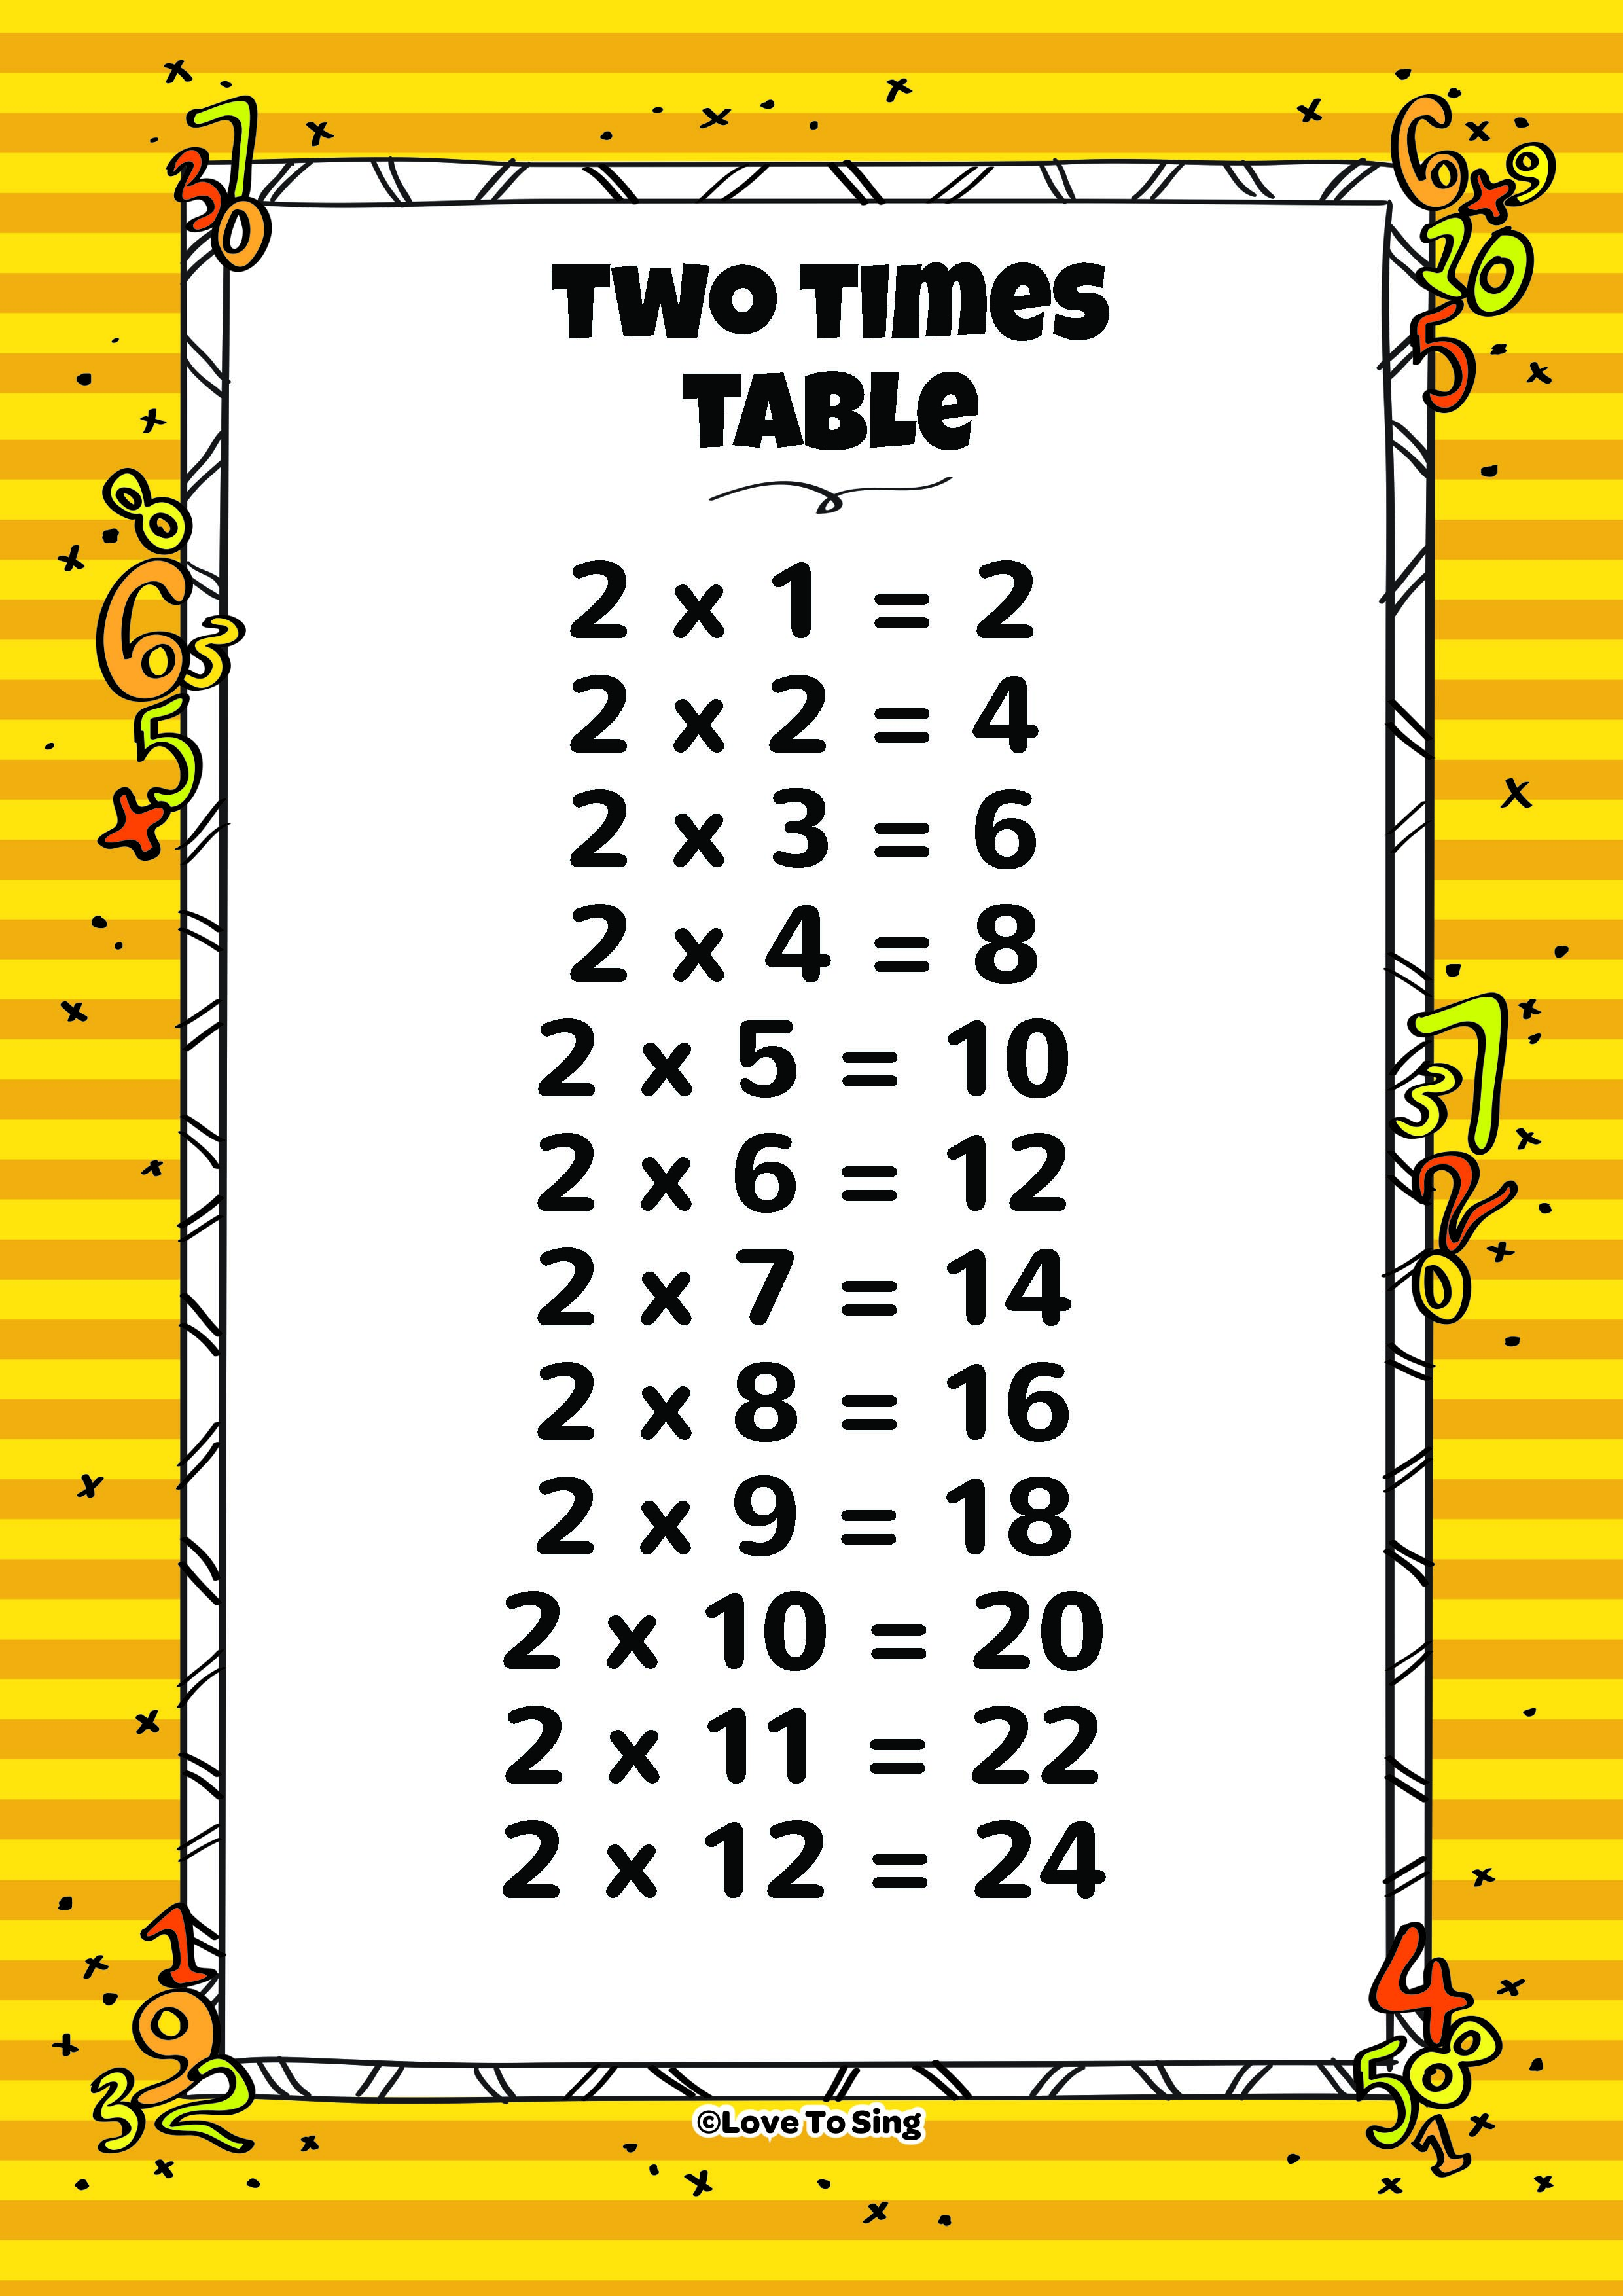 Worksheet 2 To 20 Tables Download two times table and random test kids video song with free lyrics download printable pdf